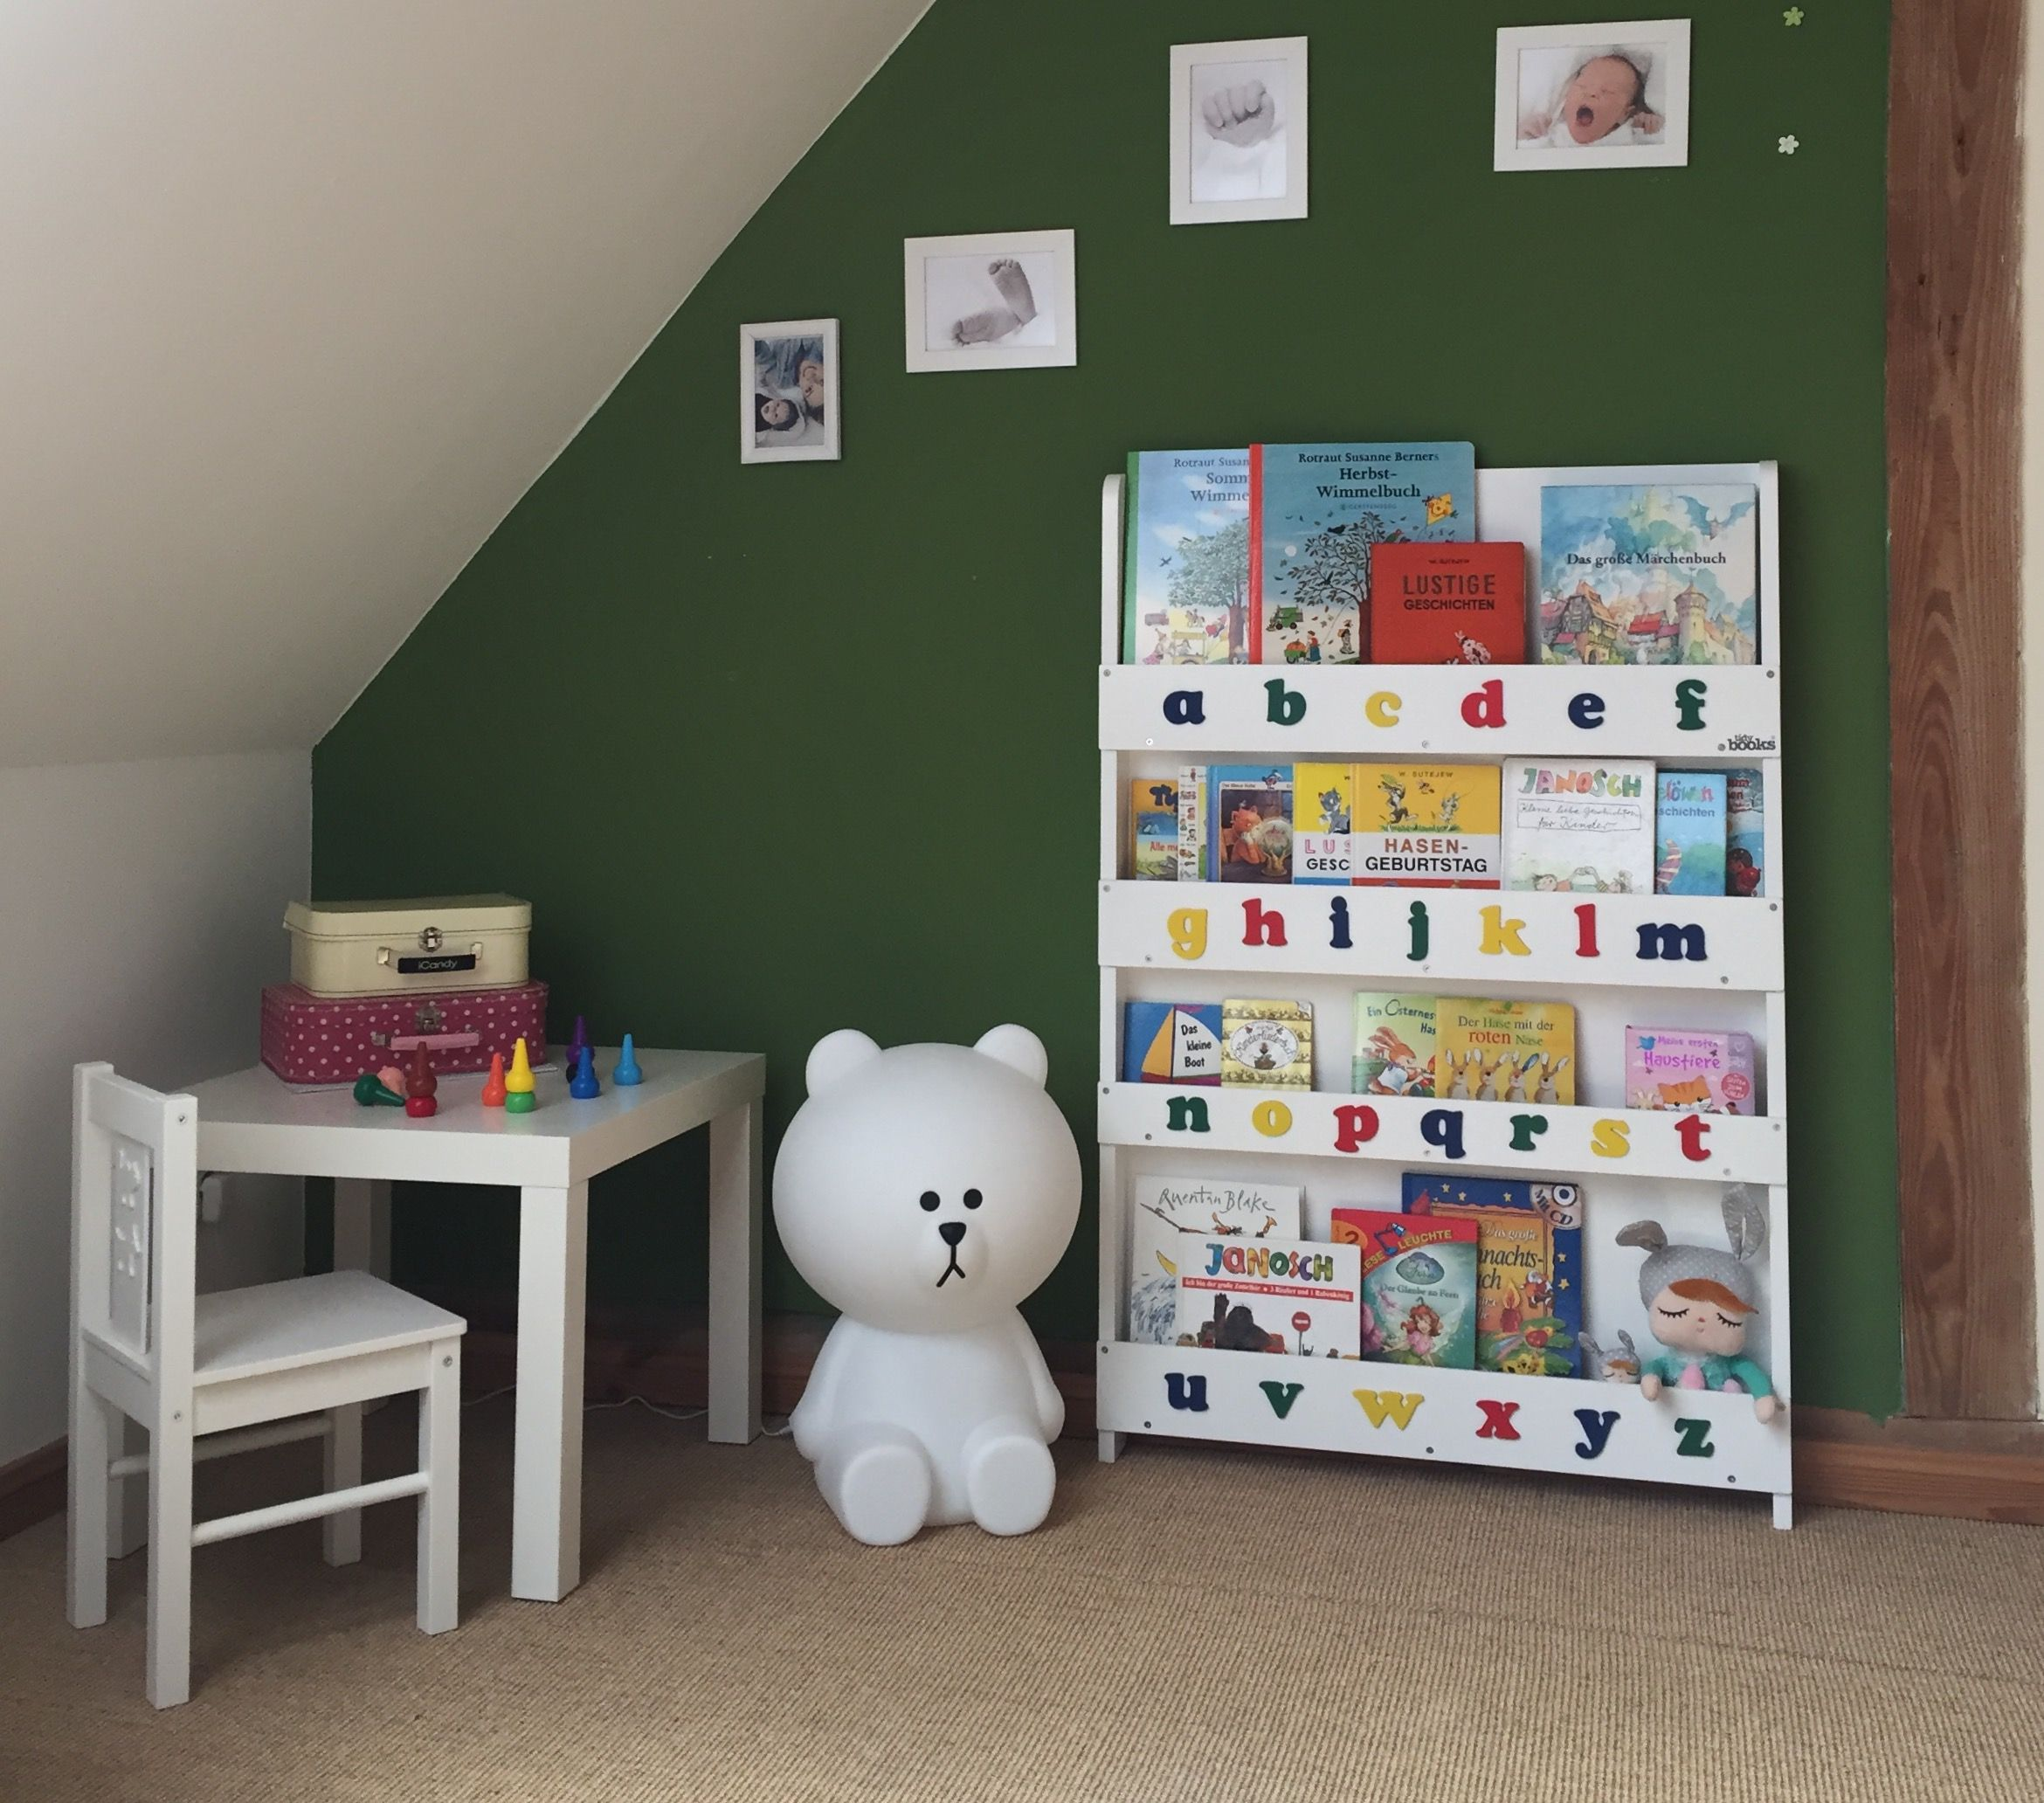 colour london com hallwaystyling bedroom area outside sigmarlondon from wall the bookshelf letter sigmar is pin collection child damo s cloud